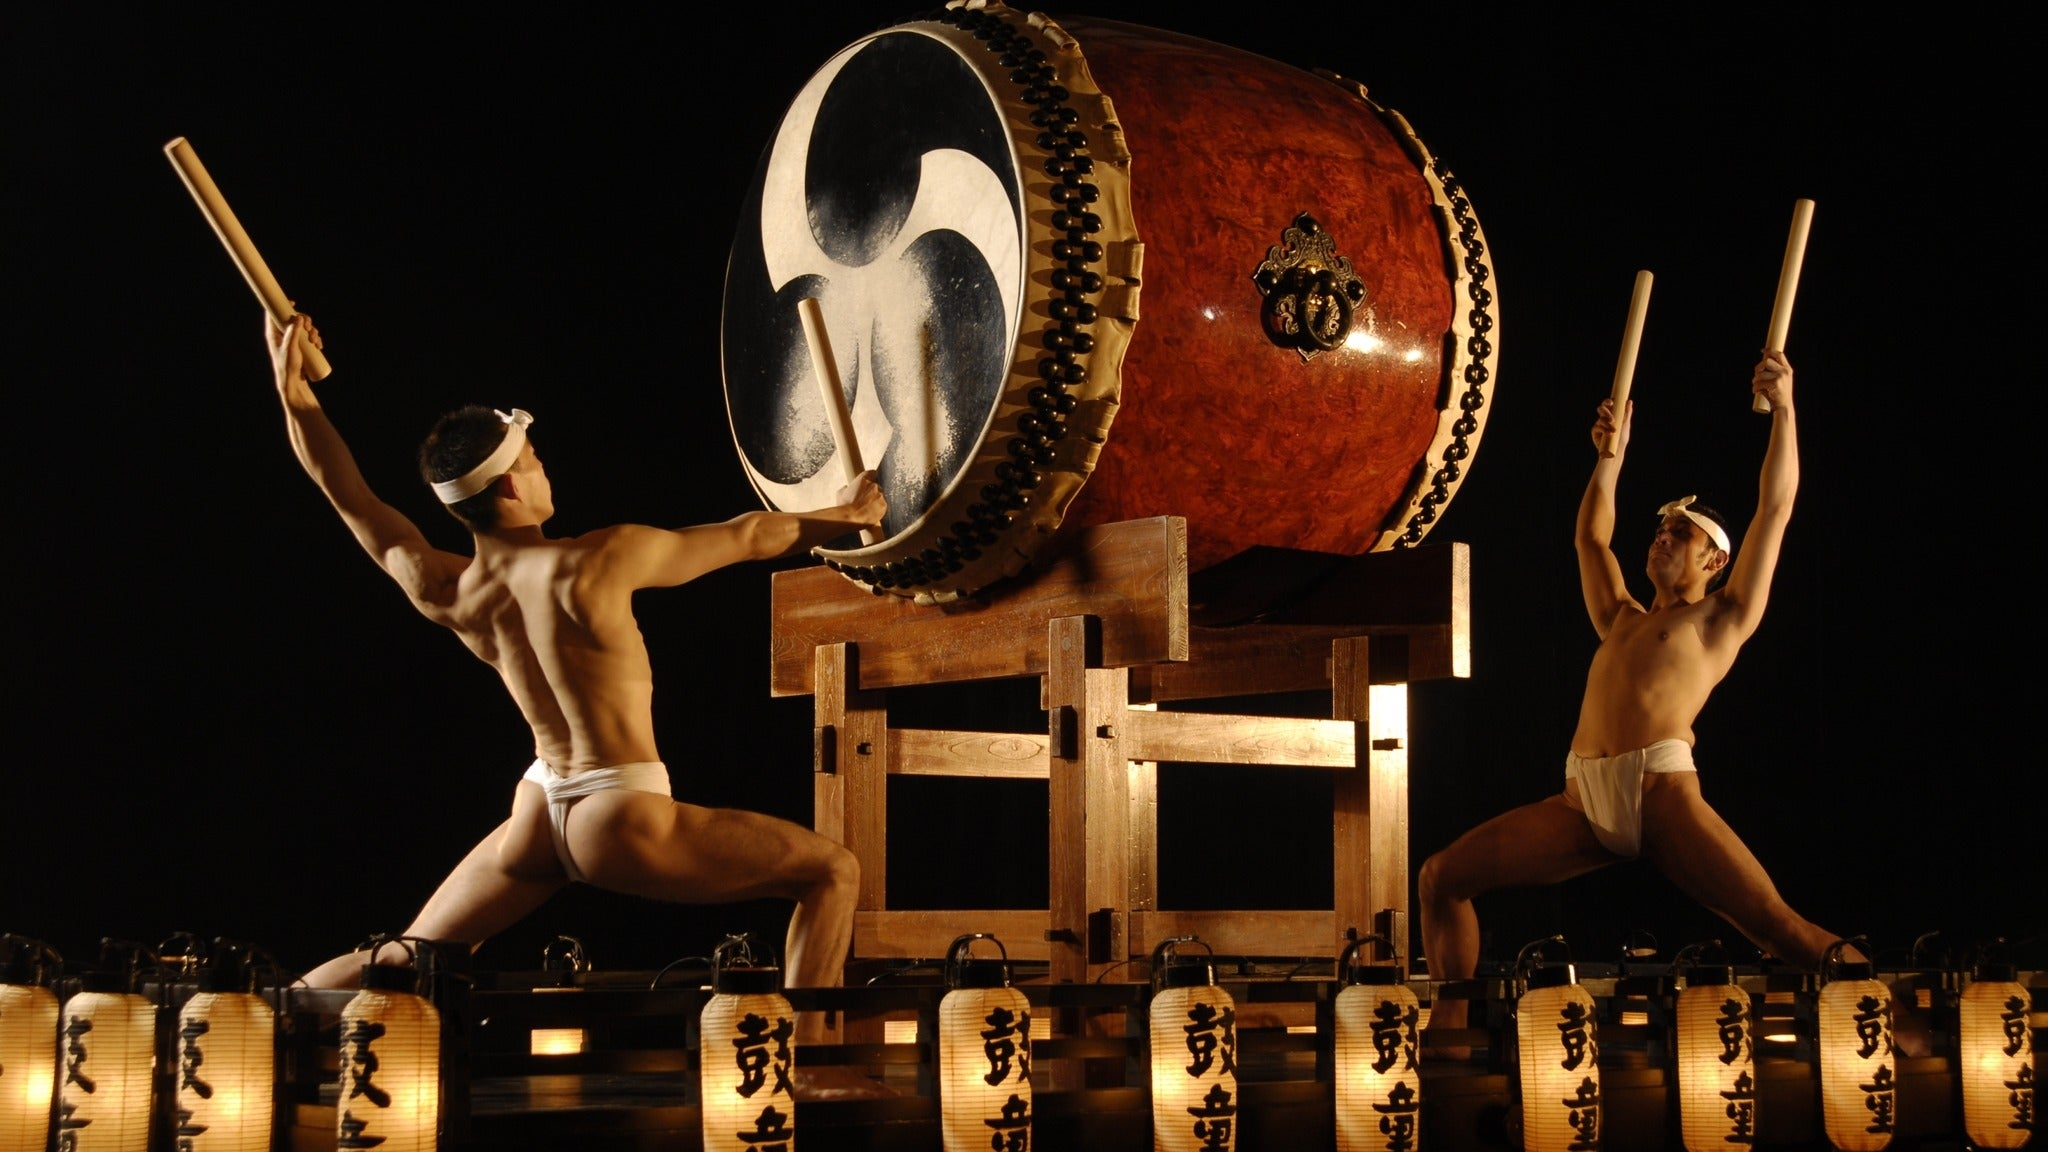 KODO at Community Theatre-NJ